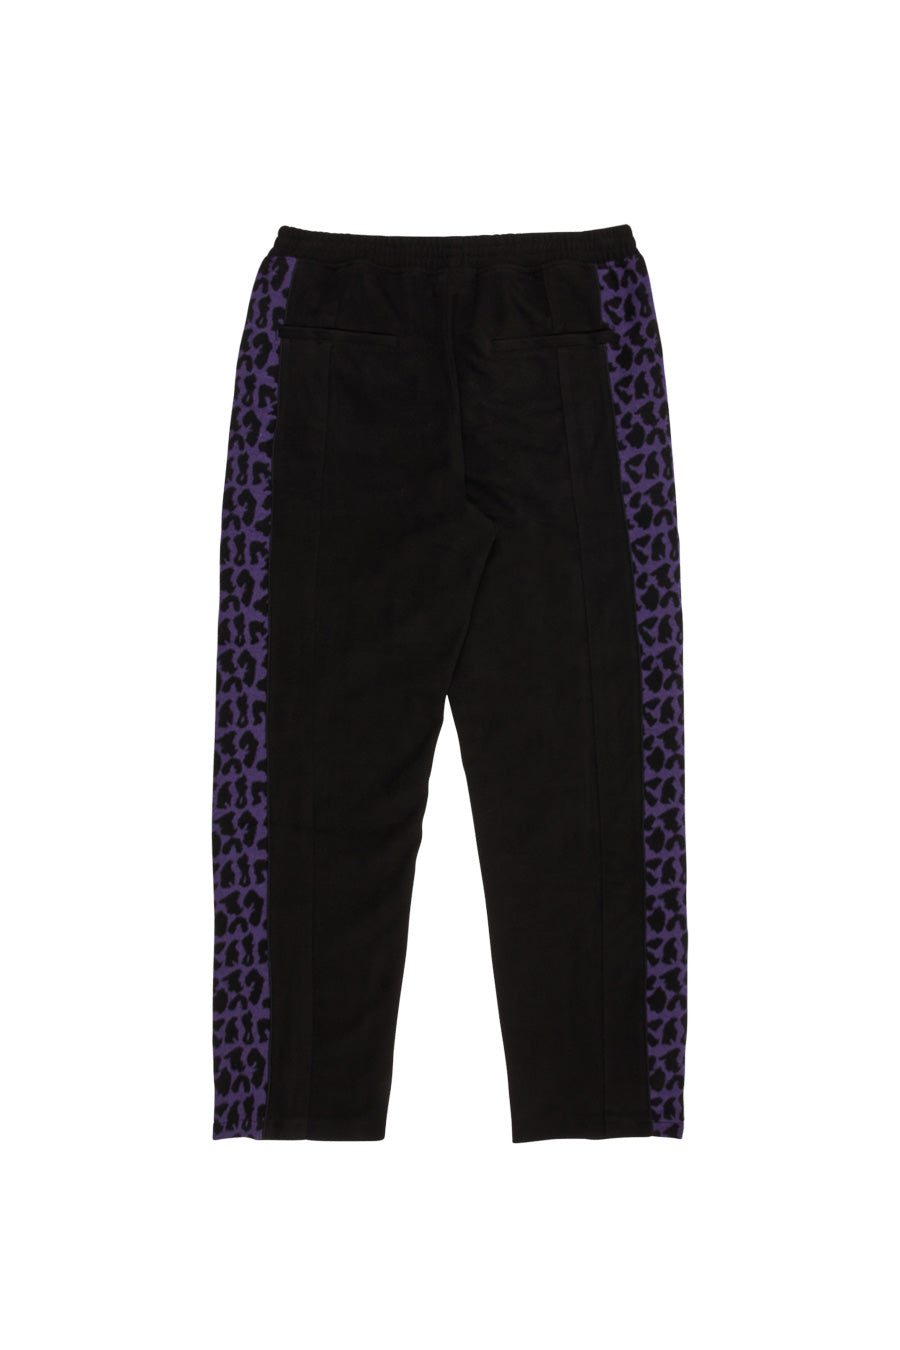 Pleasures - Black Velour Memories Pant